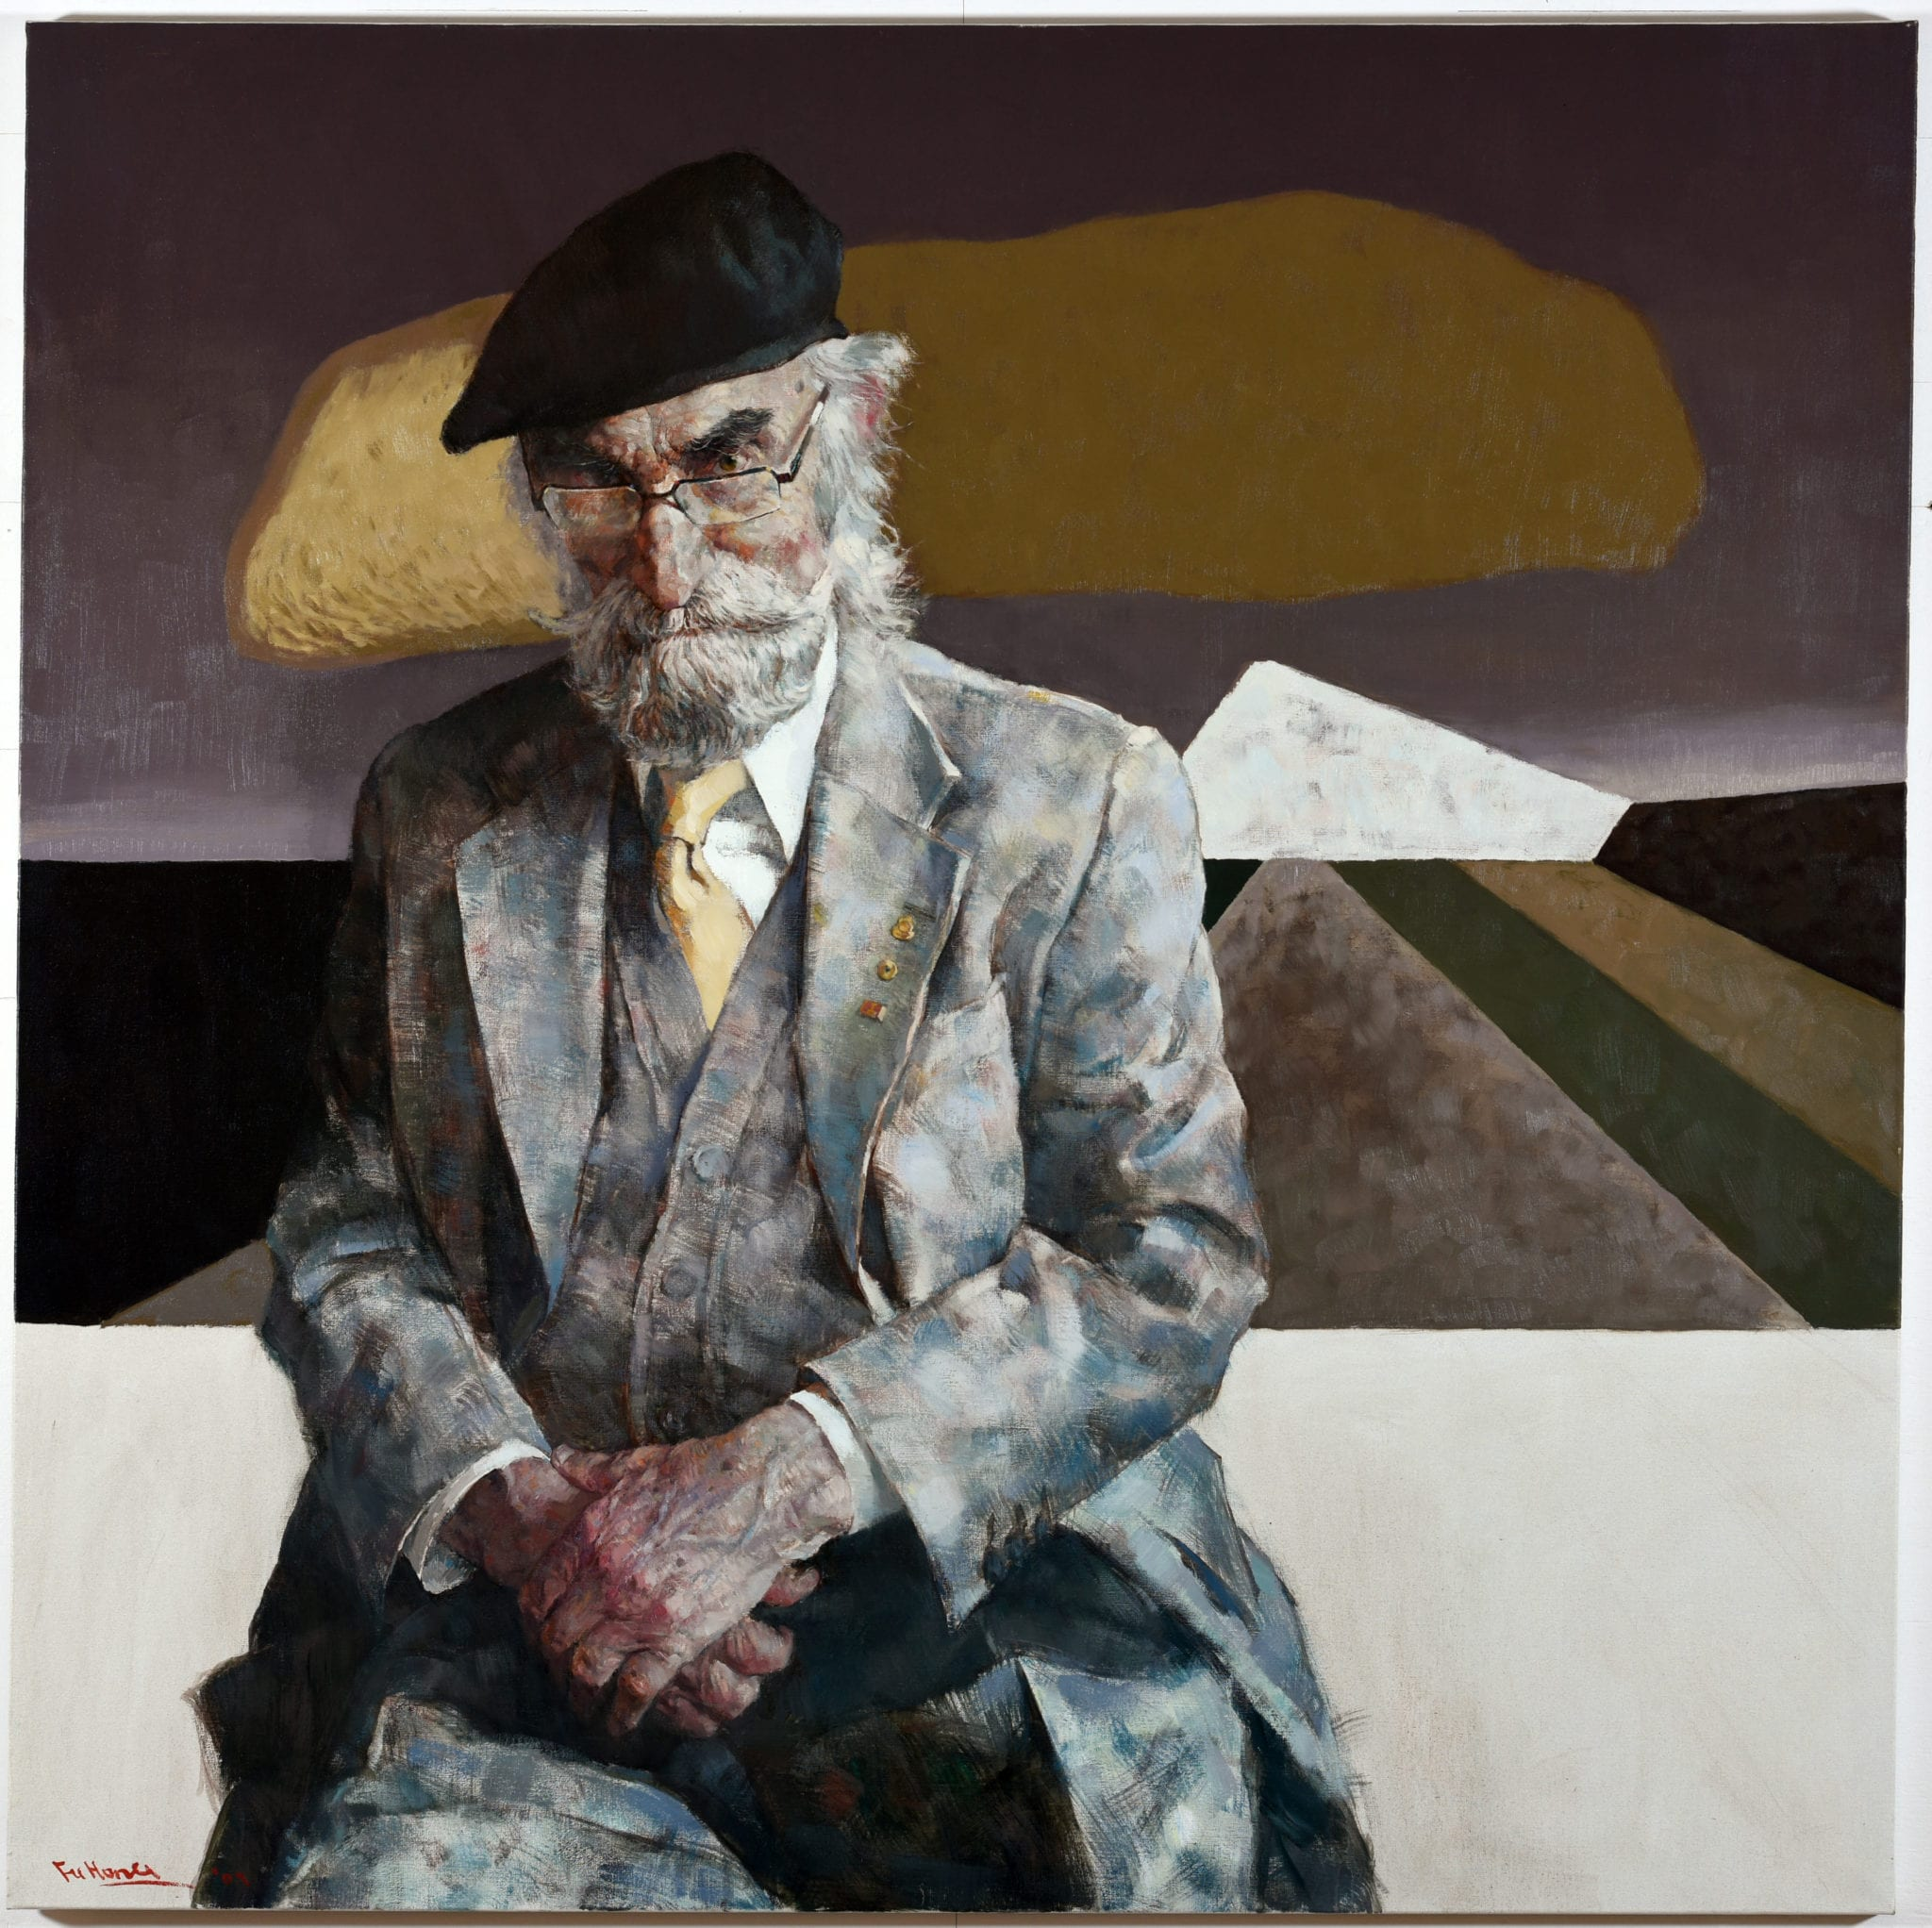 Hong Fu, b. 1946, Dr Joseph Brown, 2007, Oil on linen 152 x 152 cm. CBUS Collection of Australian Art